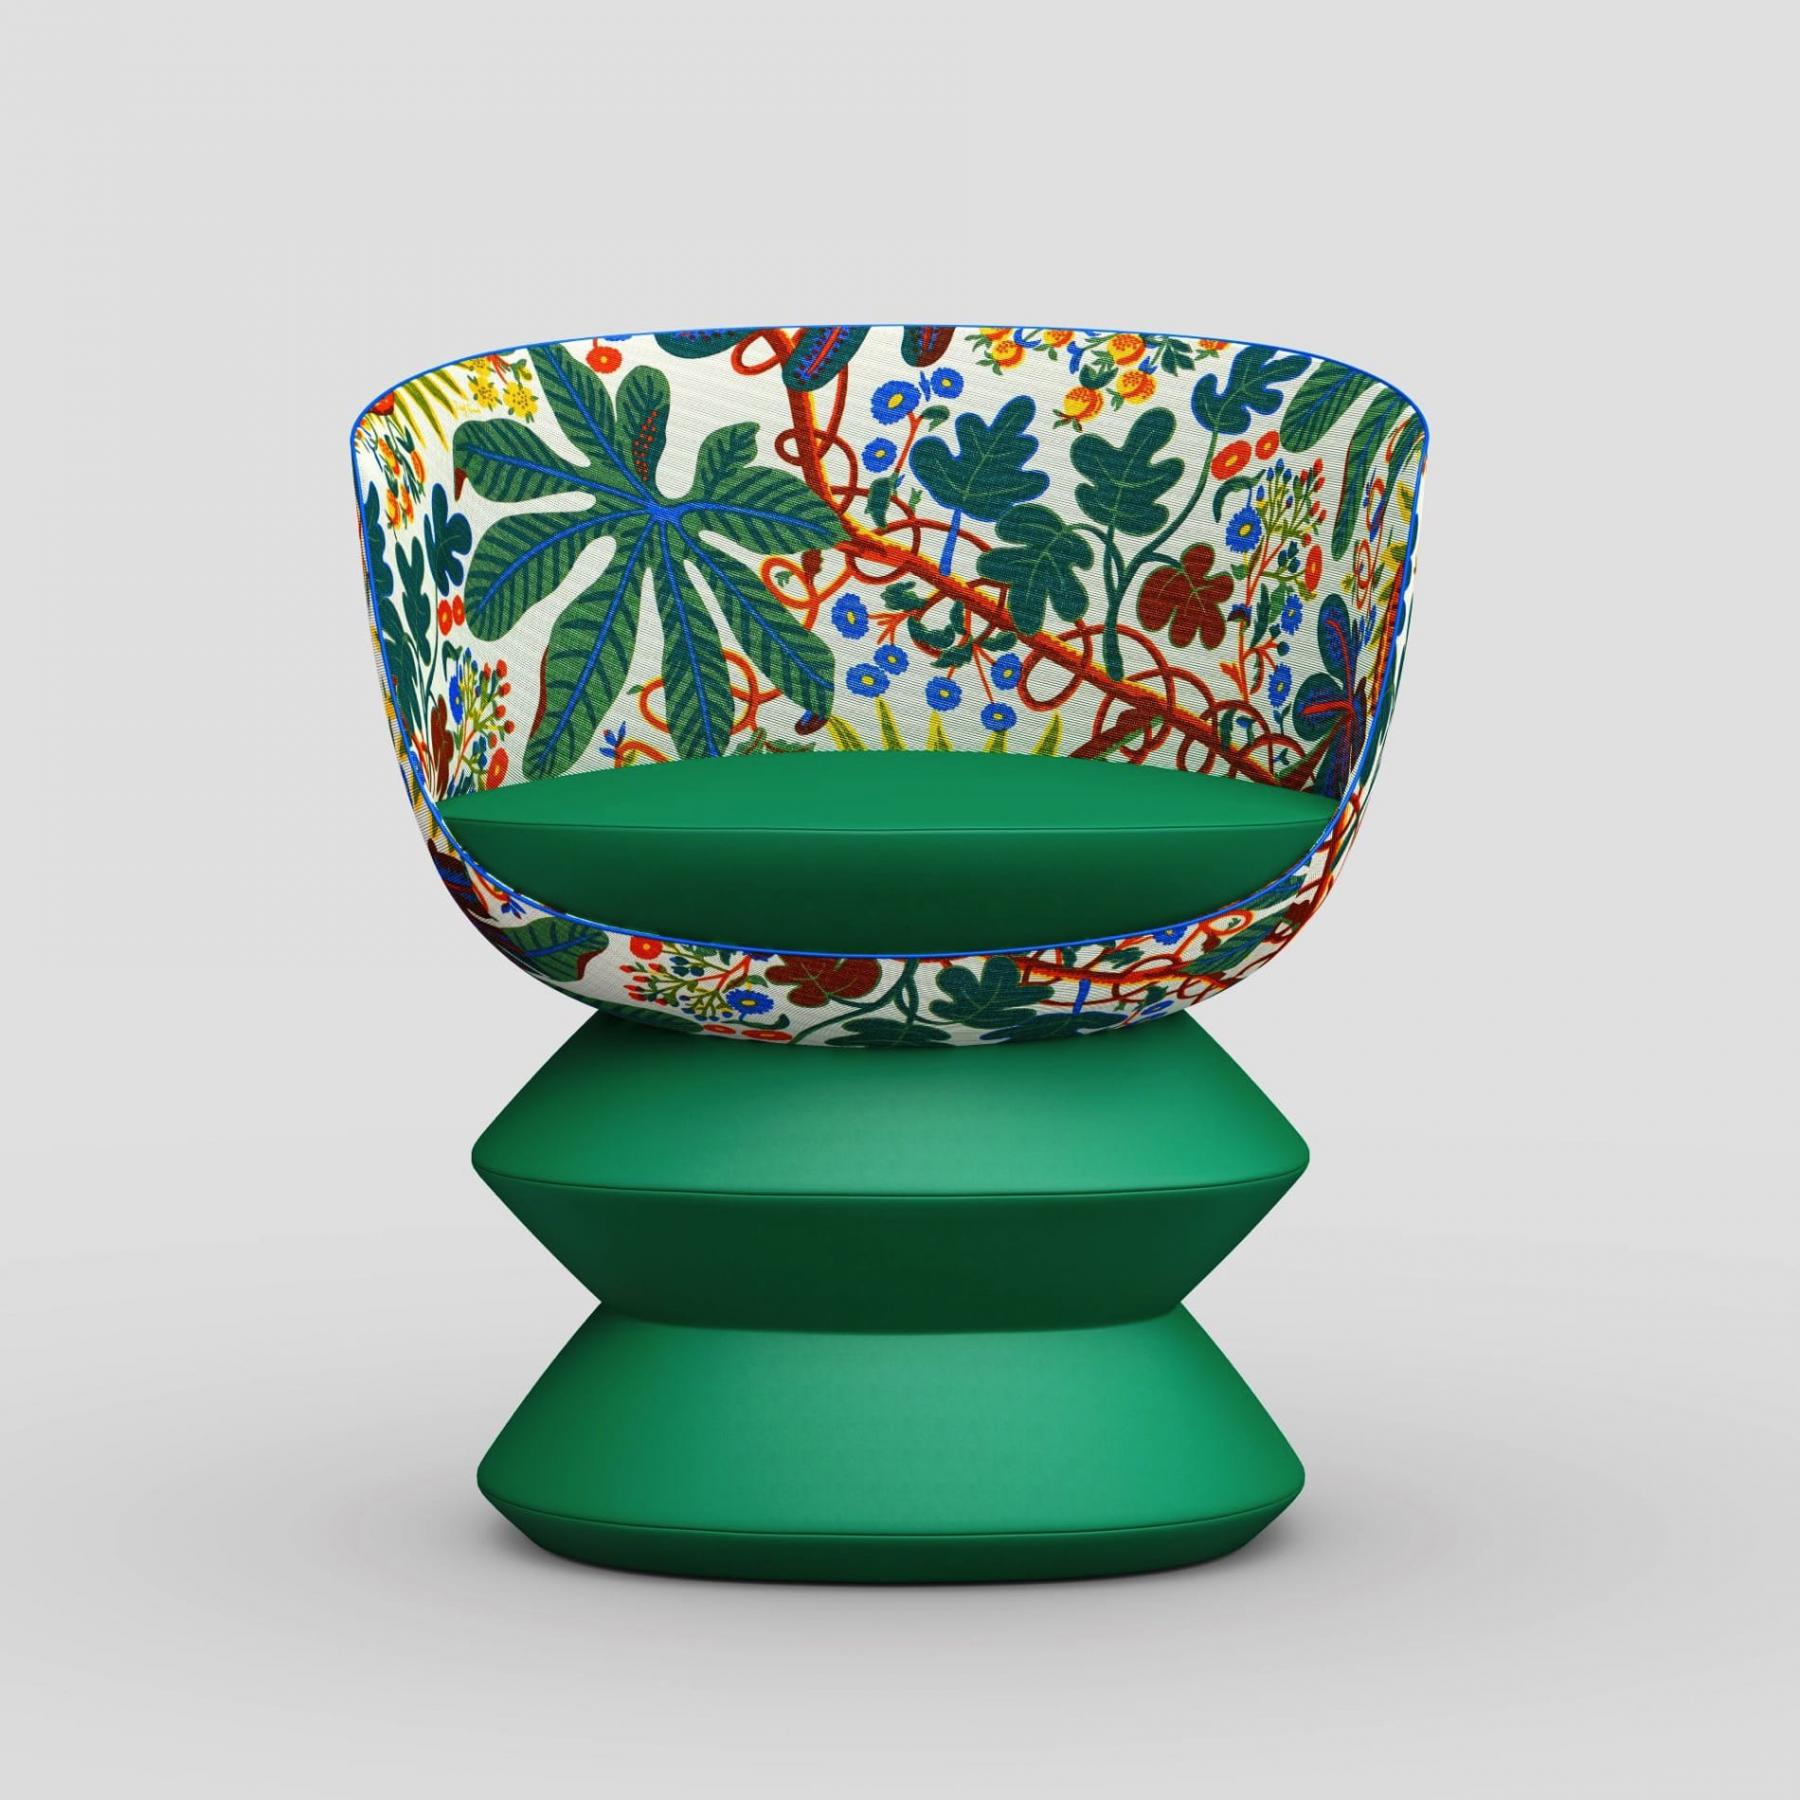 d091de69 The newest design objects from the Louis Vuitton collection | Imagicasa